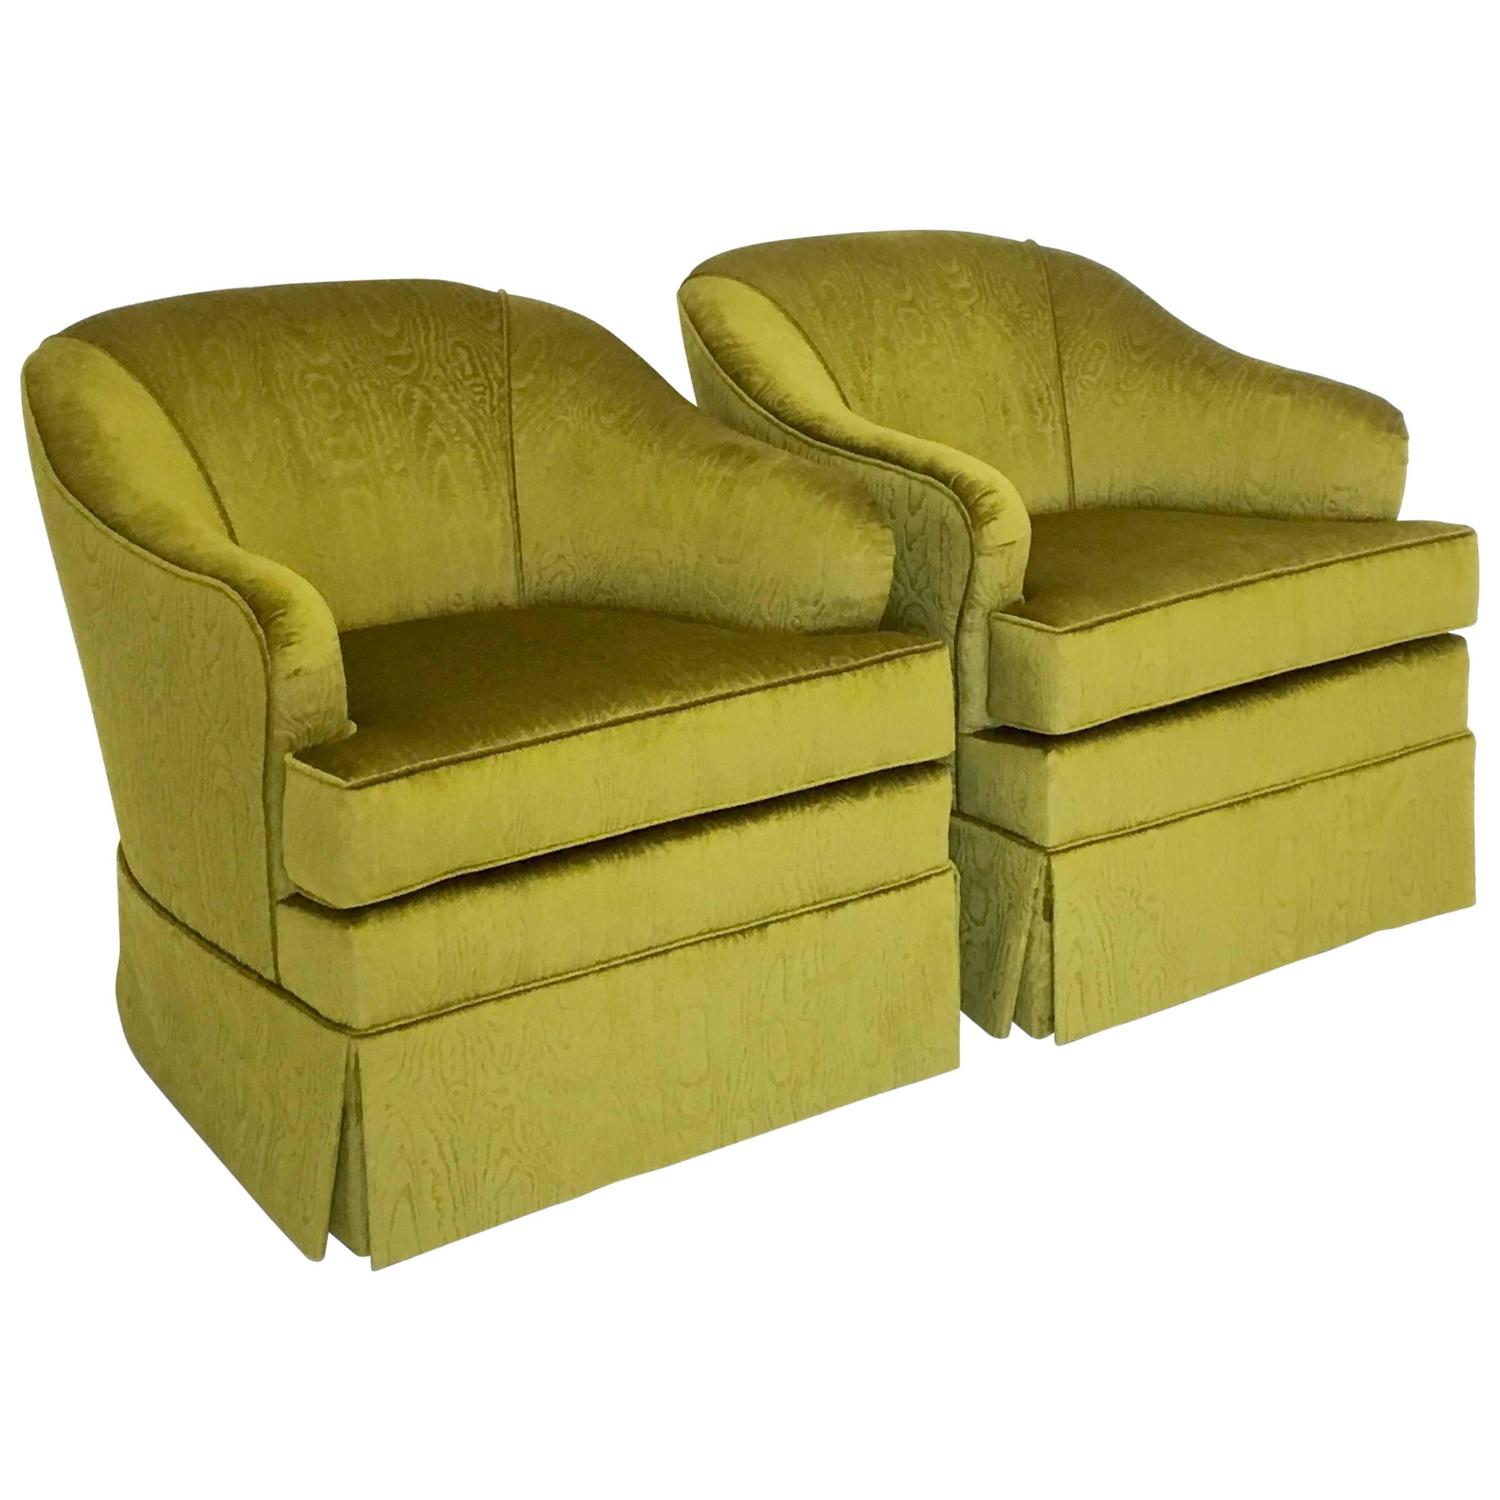 Mid Century Swivel Club Chairs in a Designer Moire Velvet For Sale